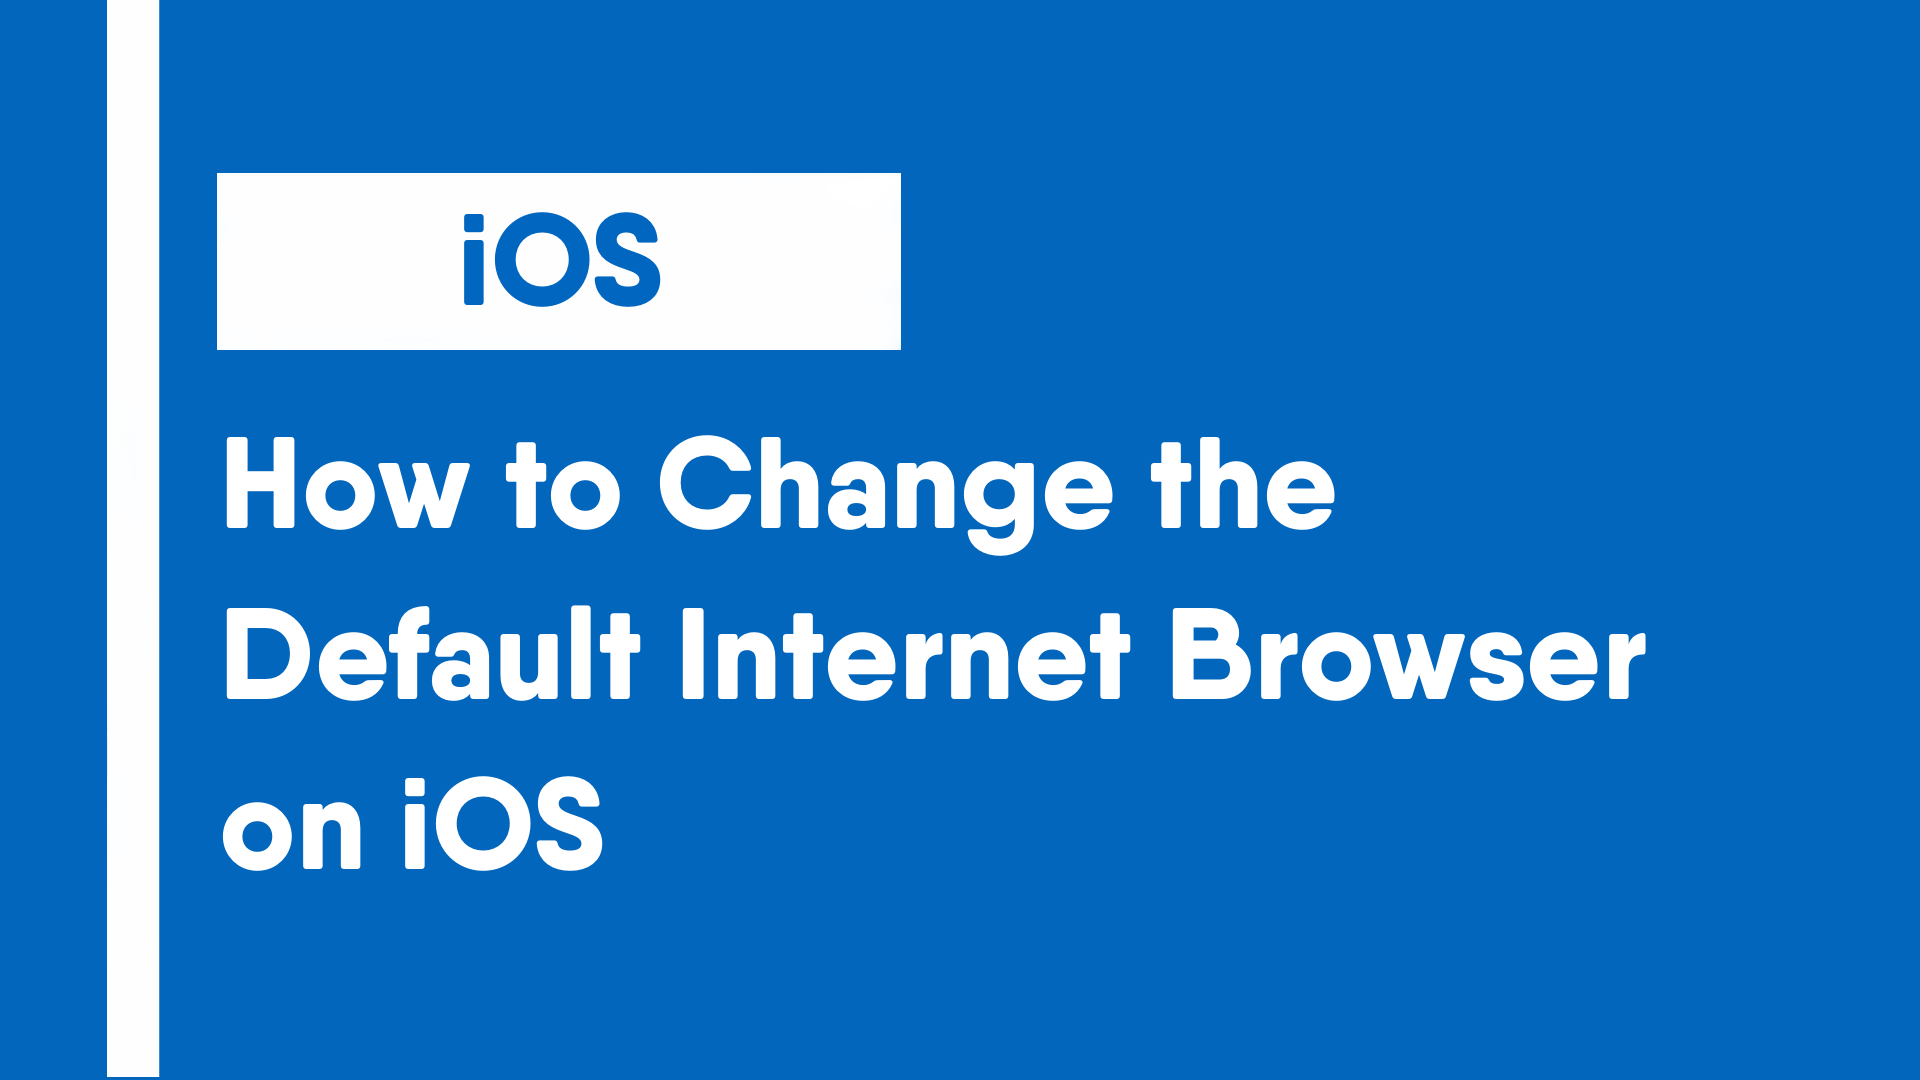 How to Change the Default Internet Browser on iOS